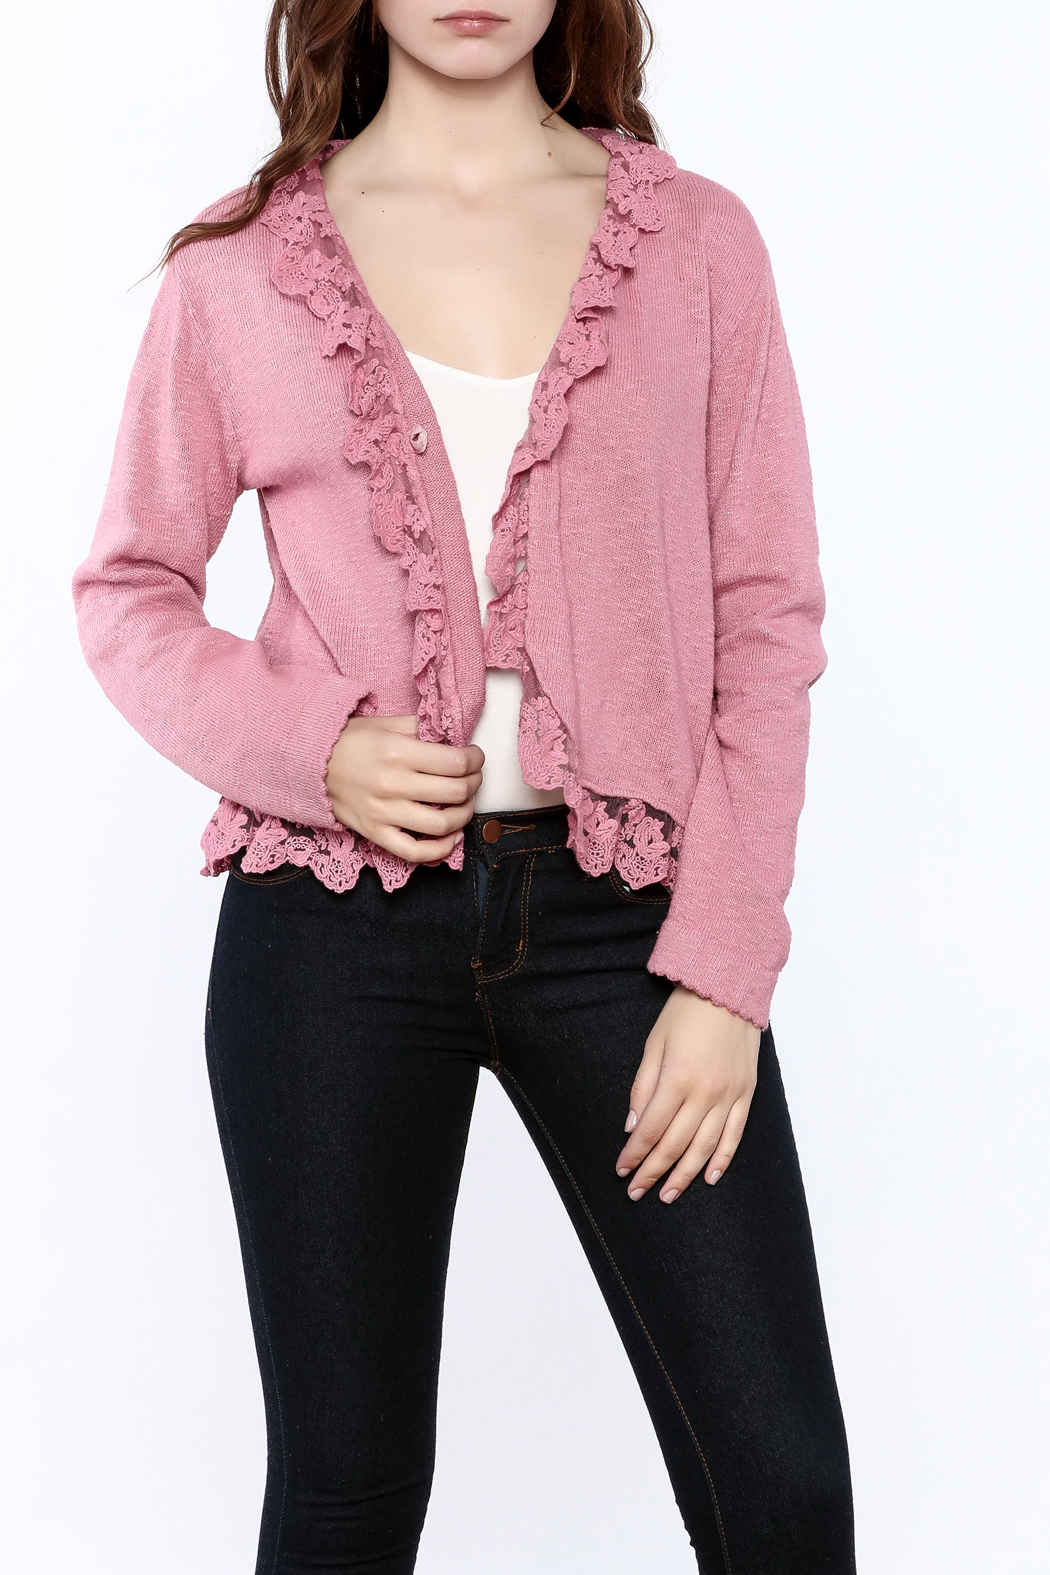 Out Of Xile Pinky Lacey Sweater - Main Image